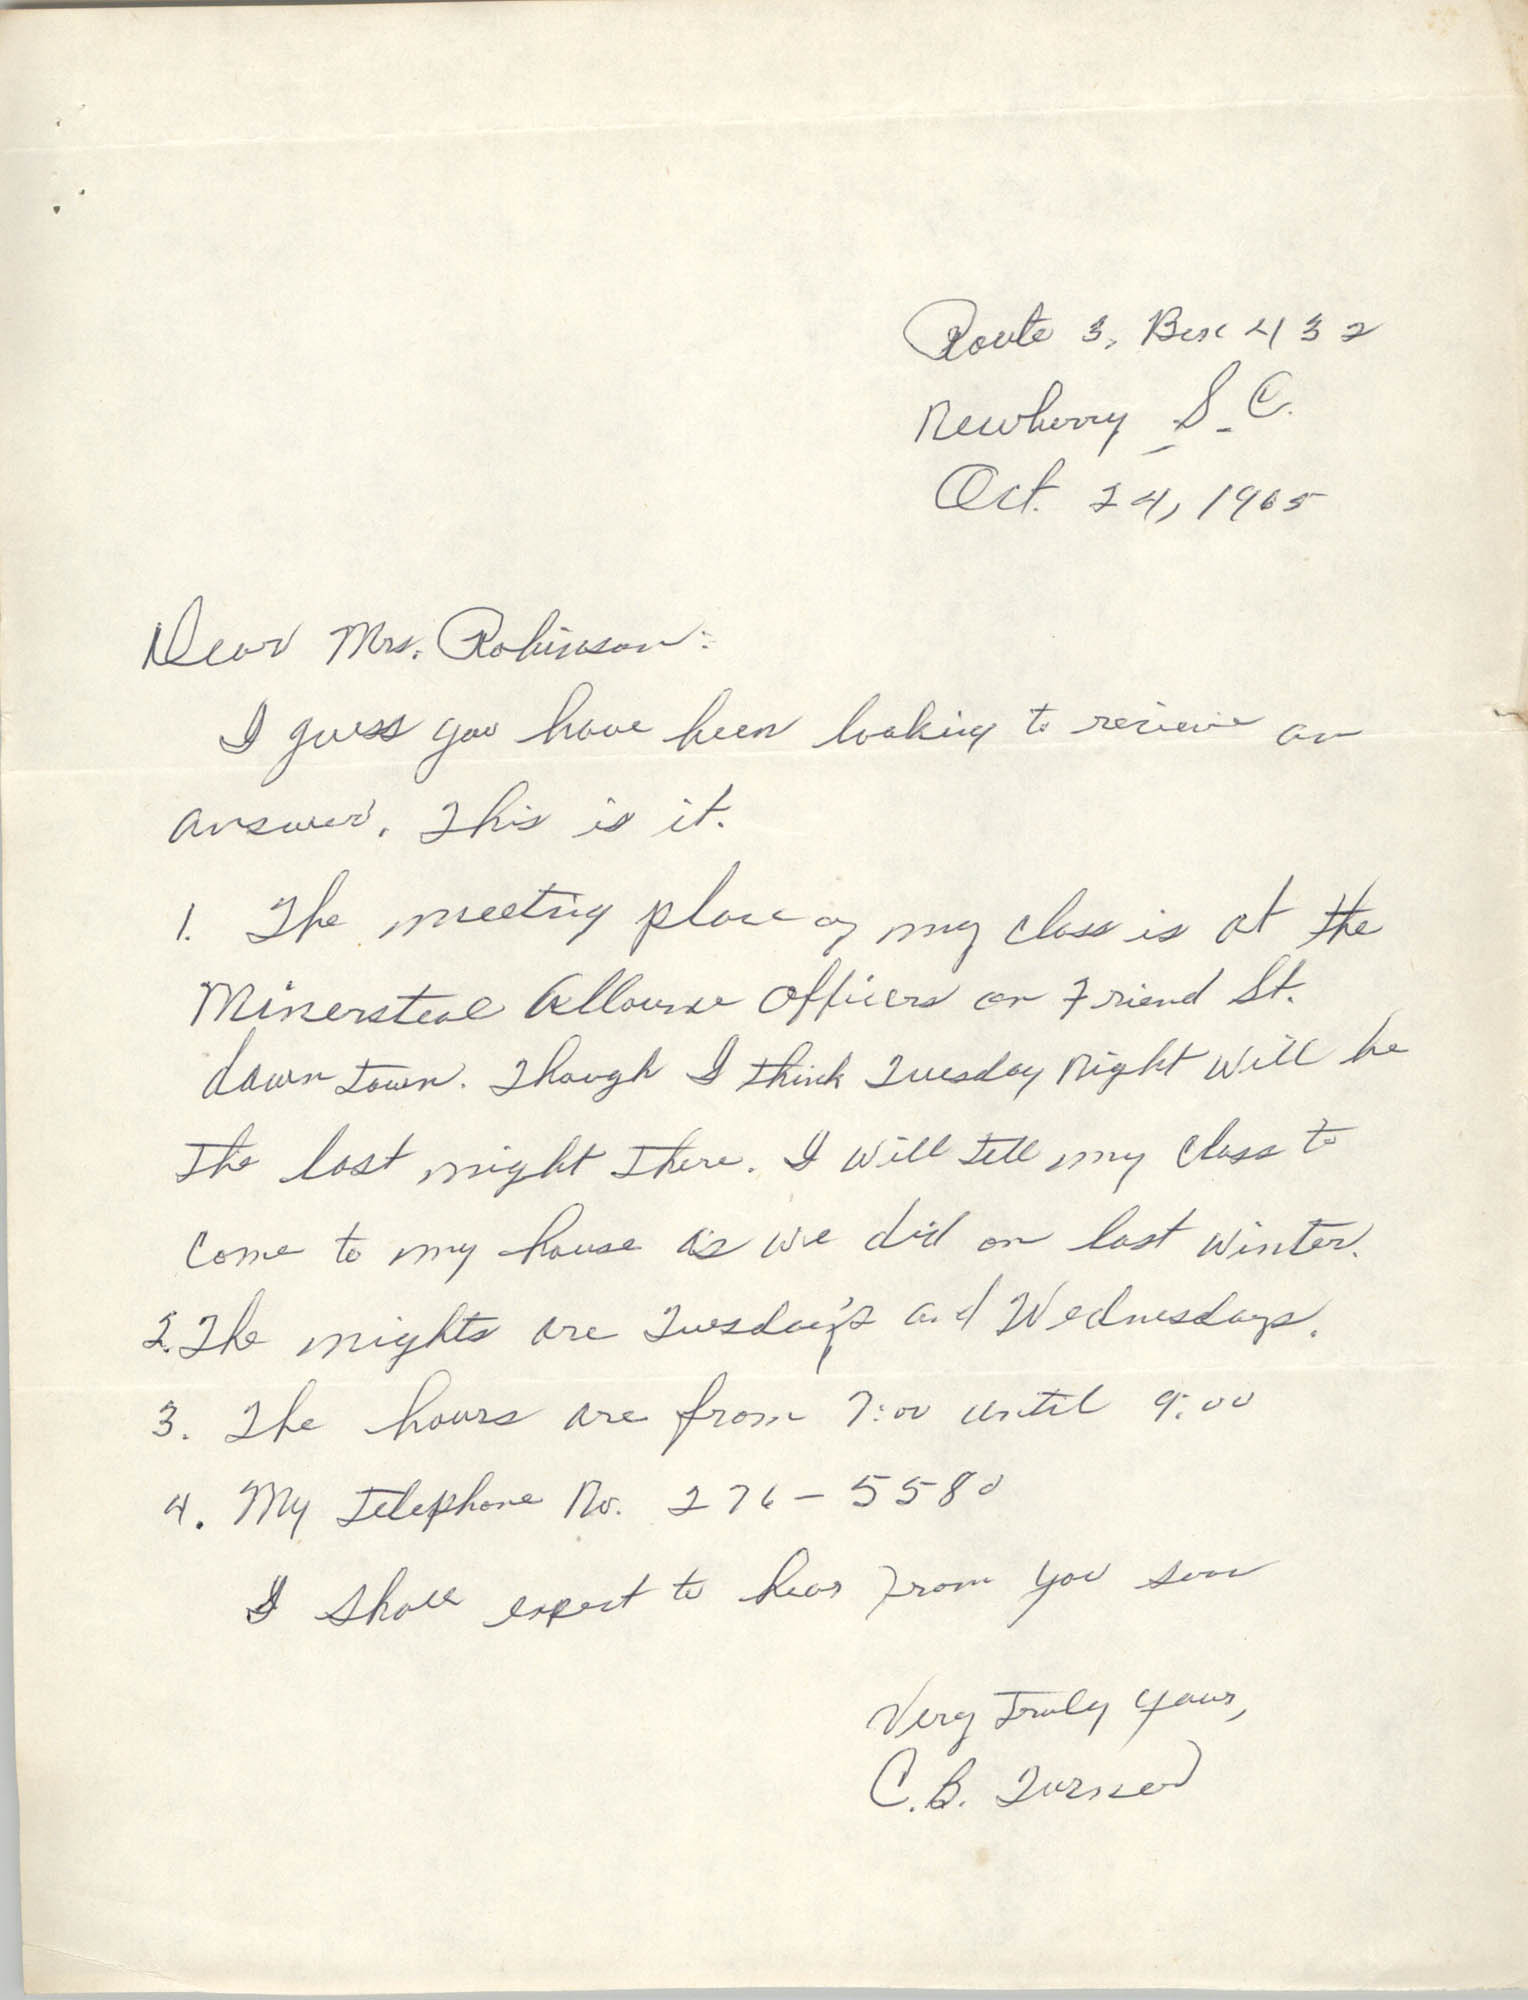 Letter from C. B. Turner to Bernice Robinson, October 24, 1965